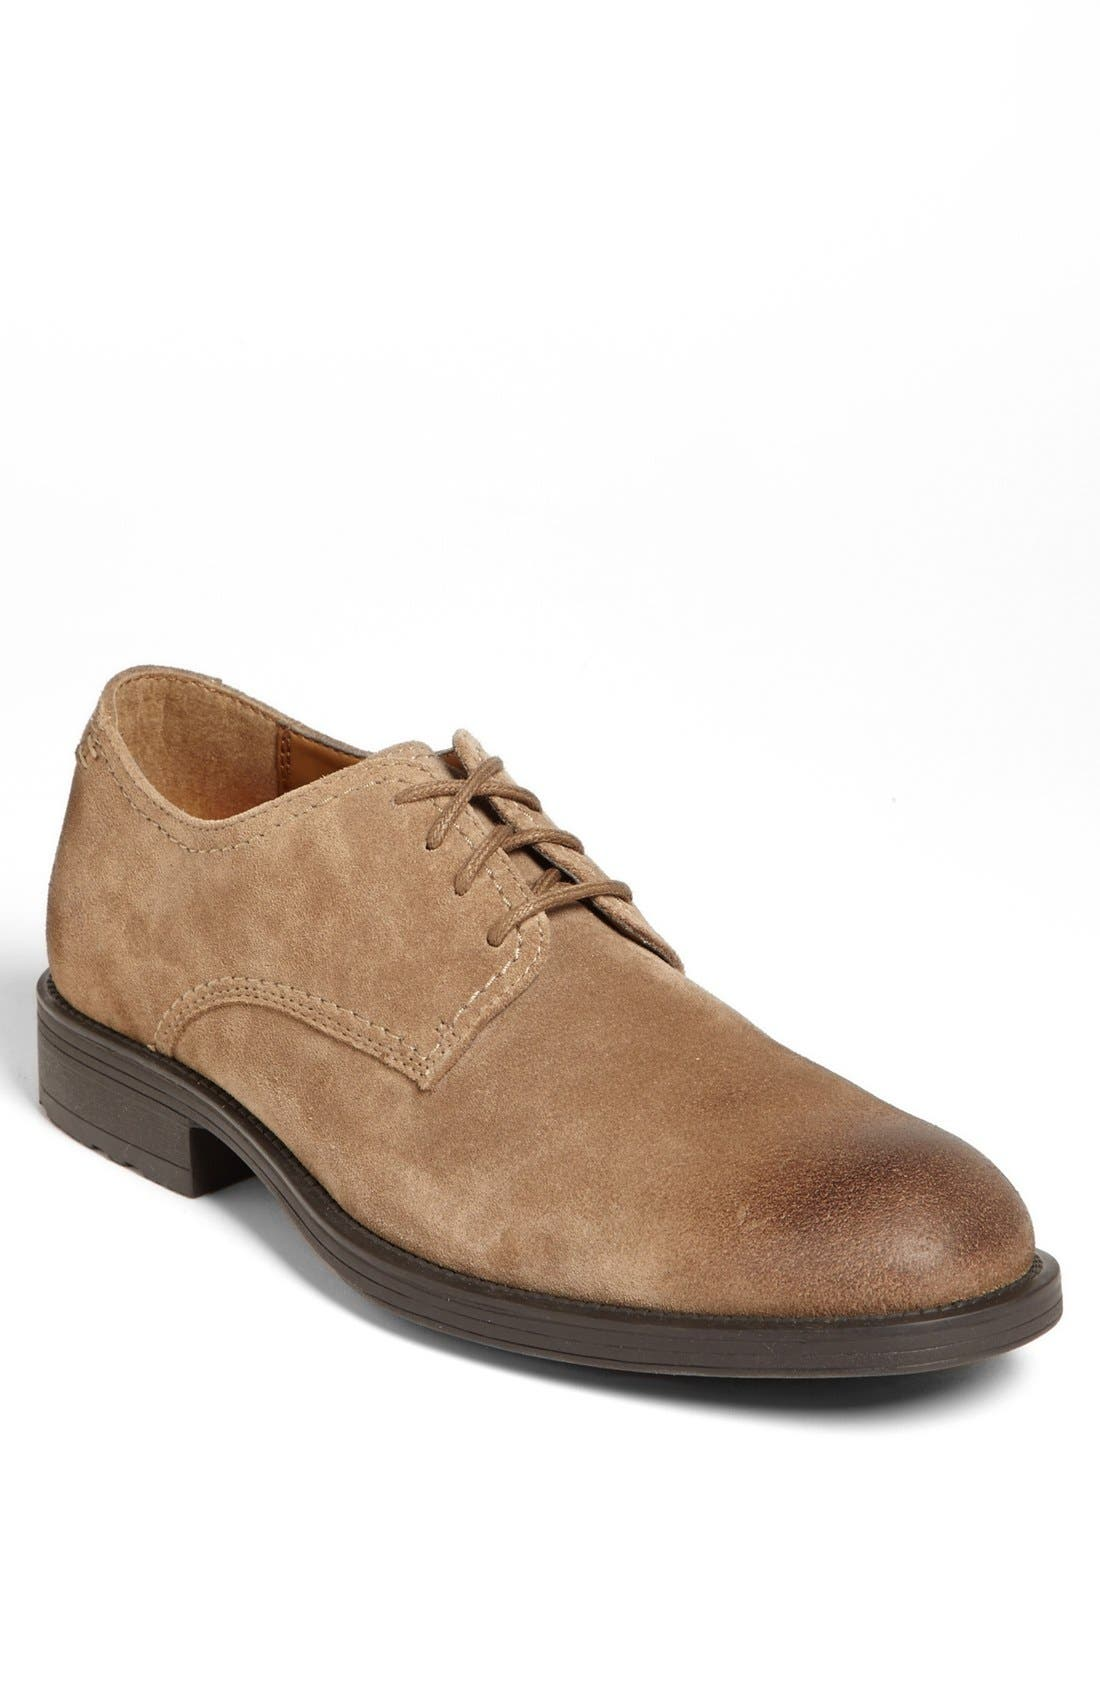 Alternate Image 1 Selected - Hush Puppies® 'Plane' Buck Shoe